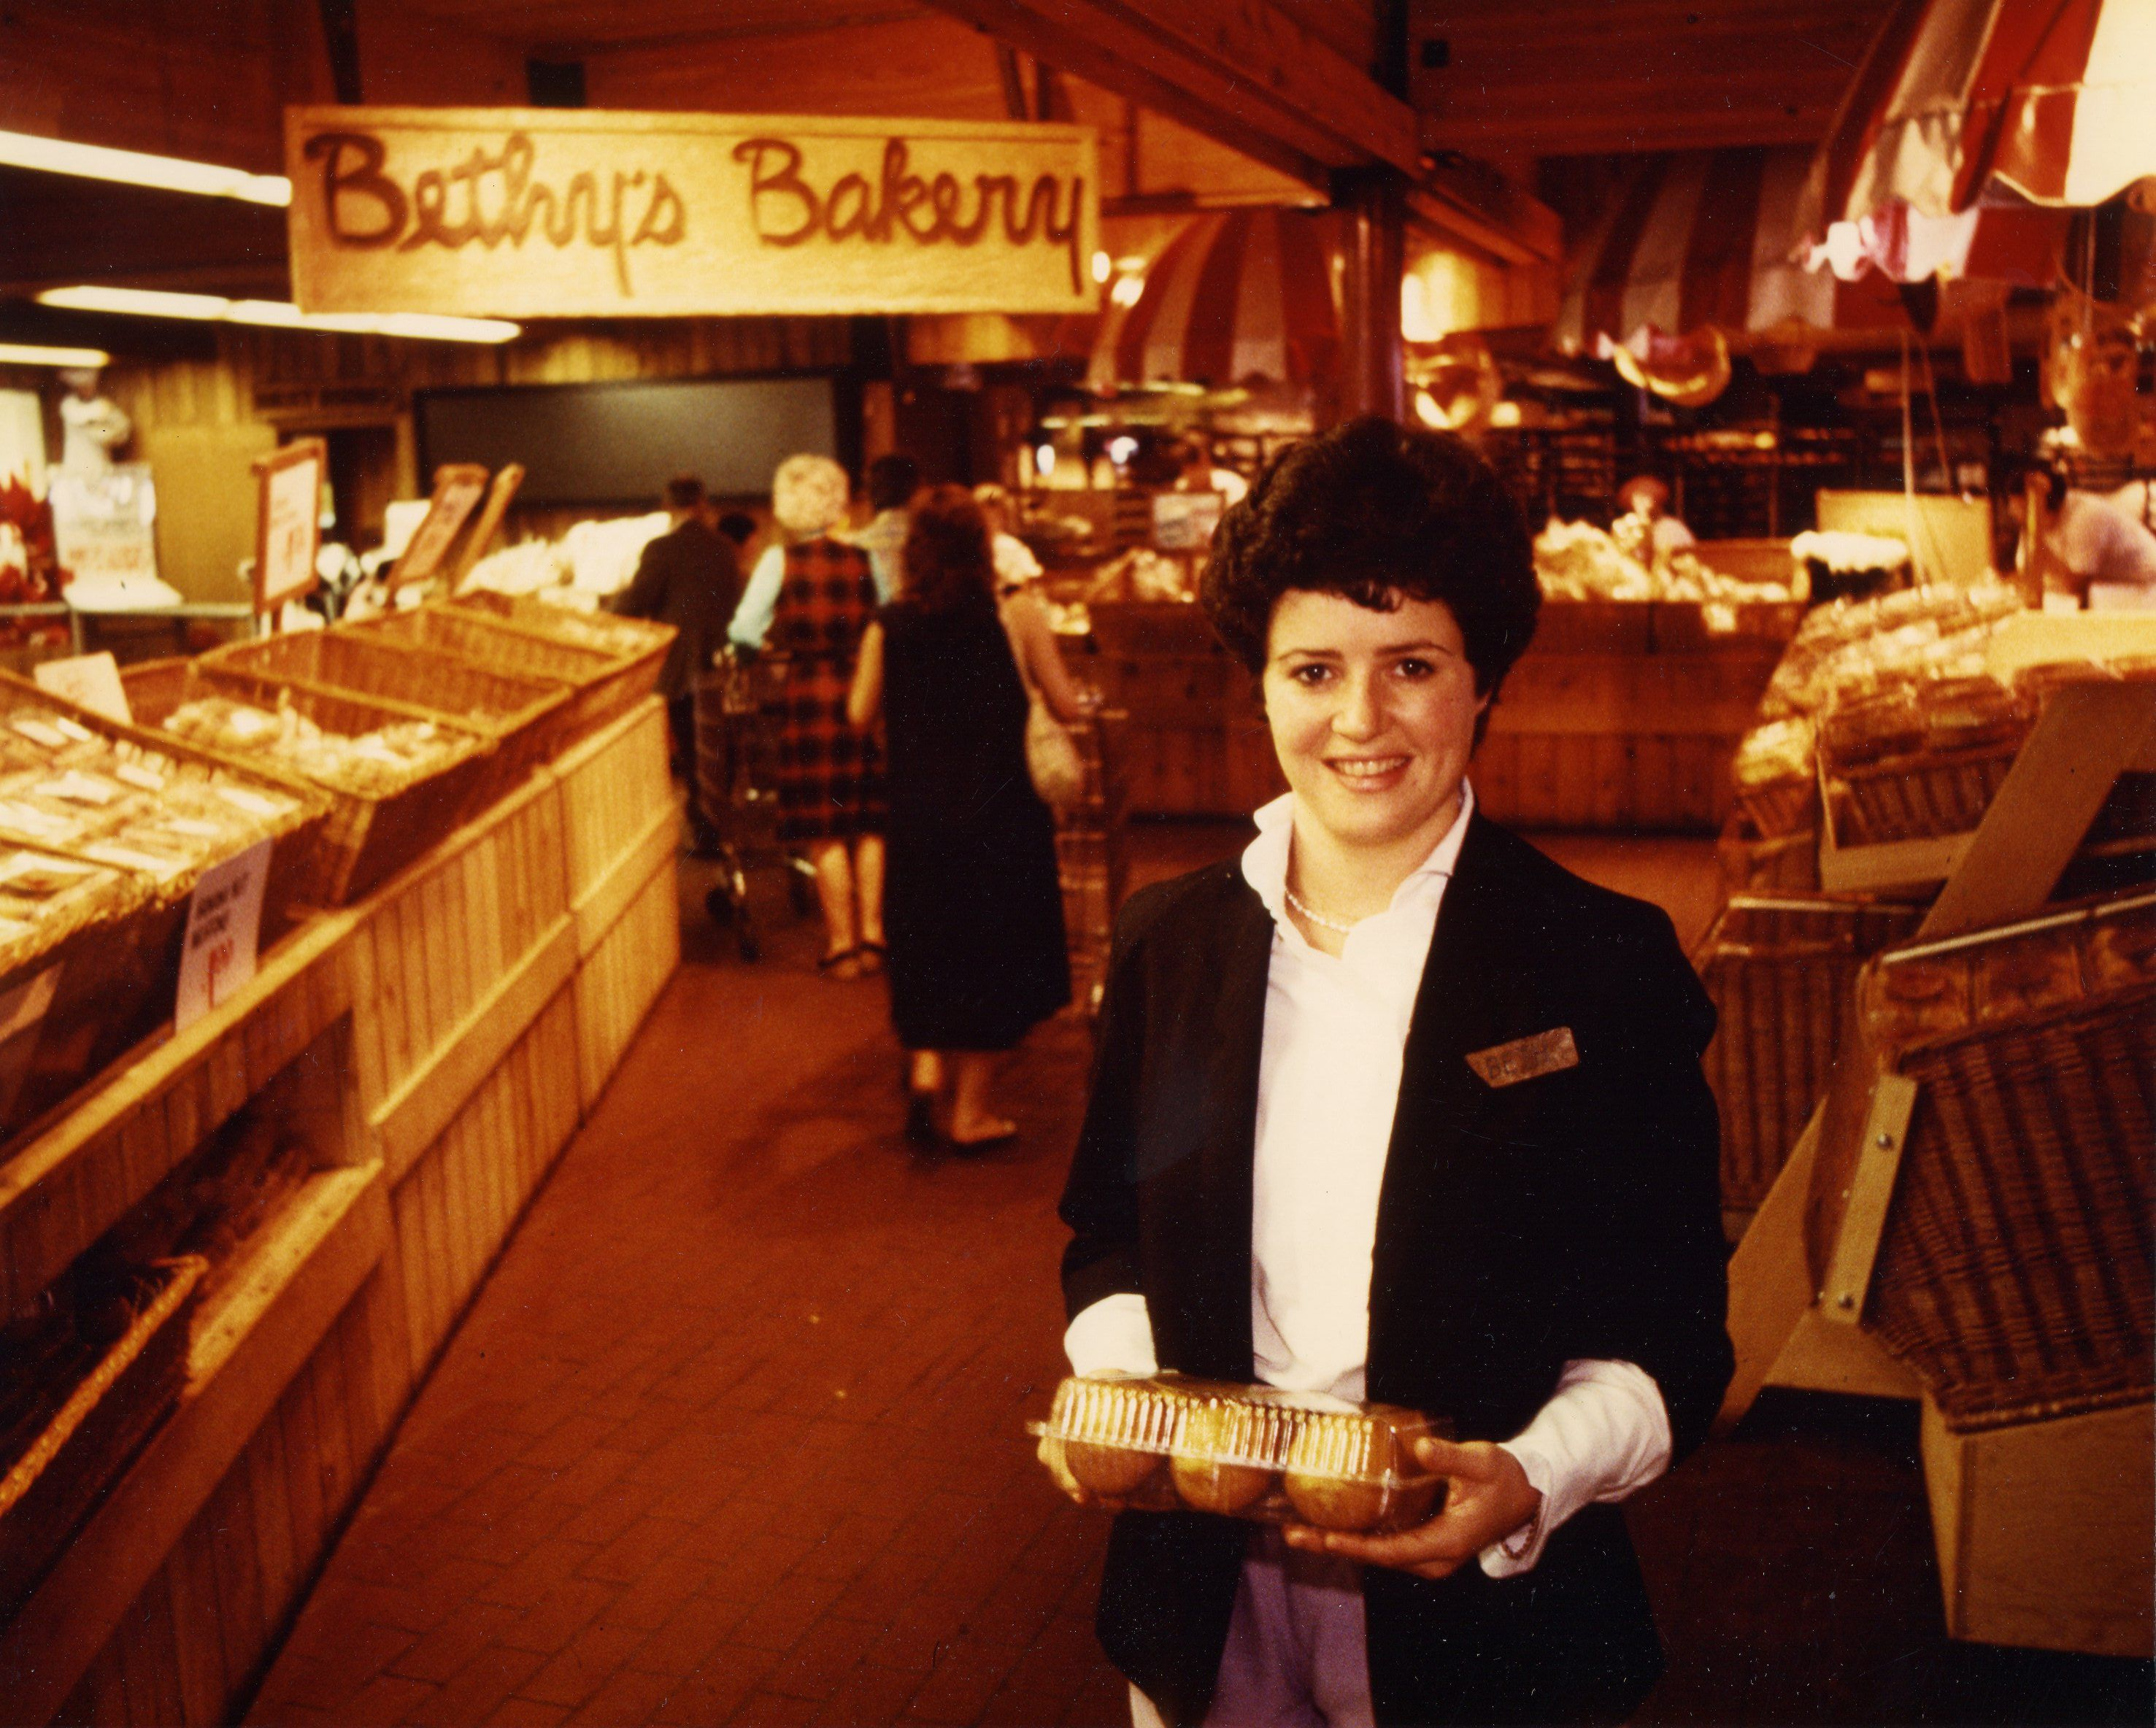 Bethy's Bakery was founded in 1981, when Beth Leonard returned from studying in Paris. It all started with a croissant!